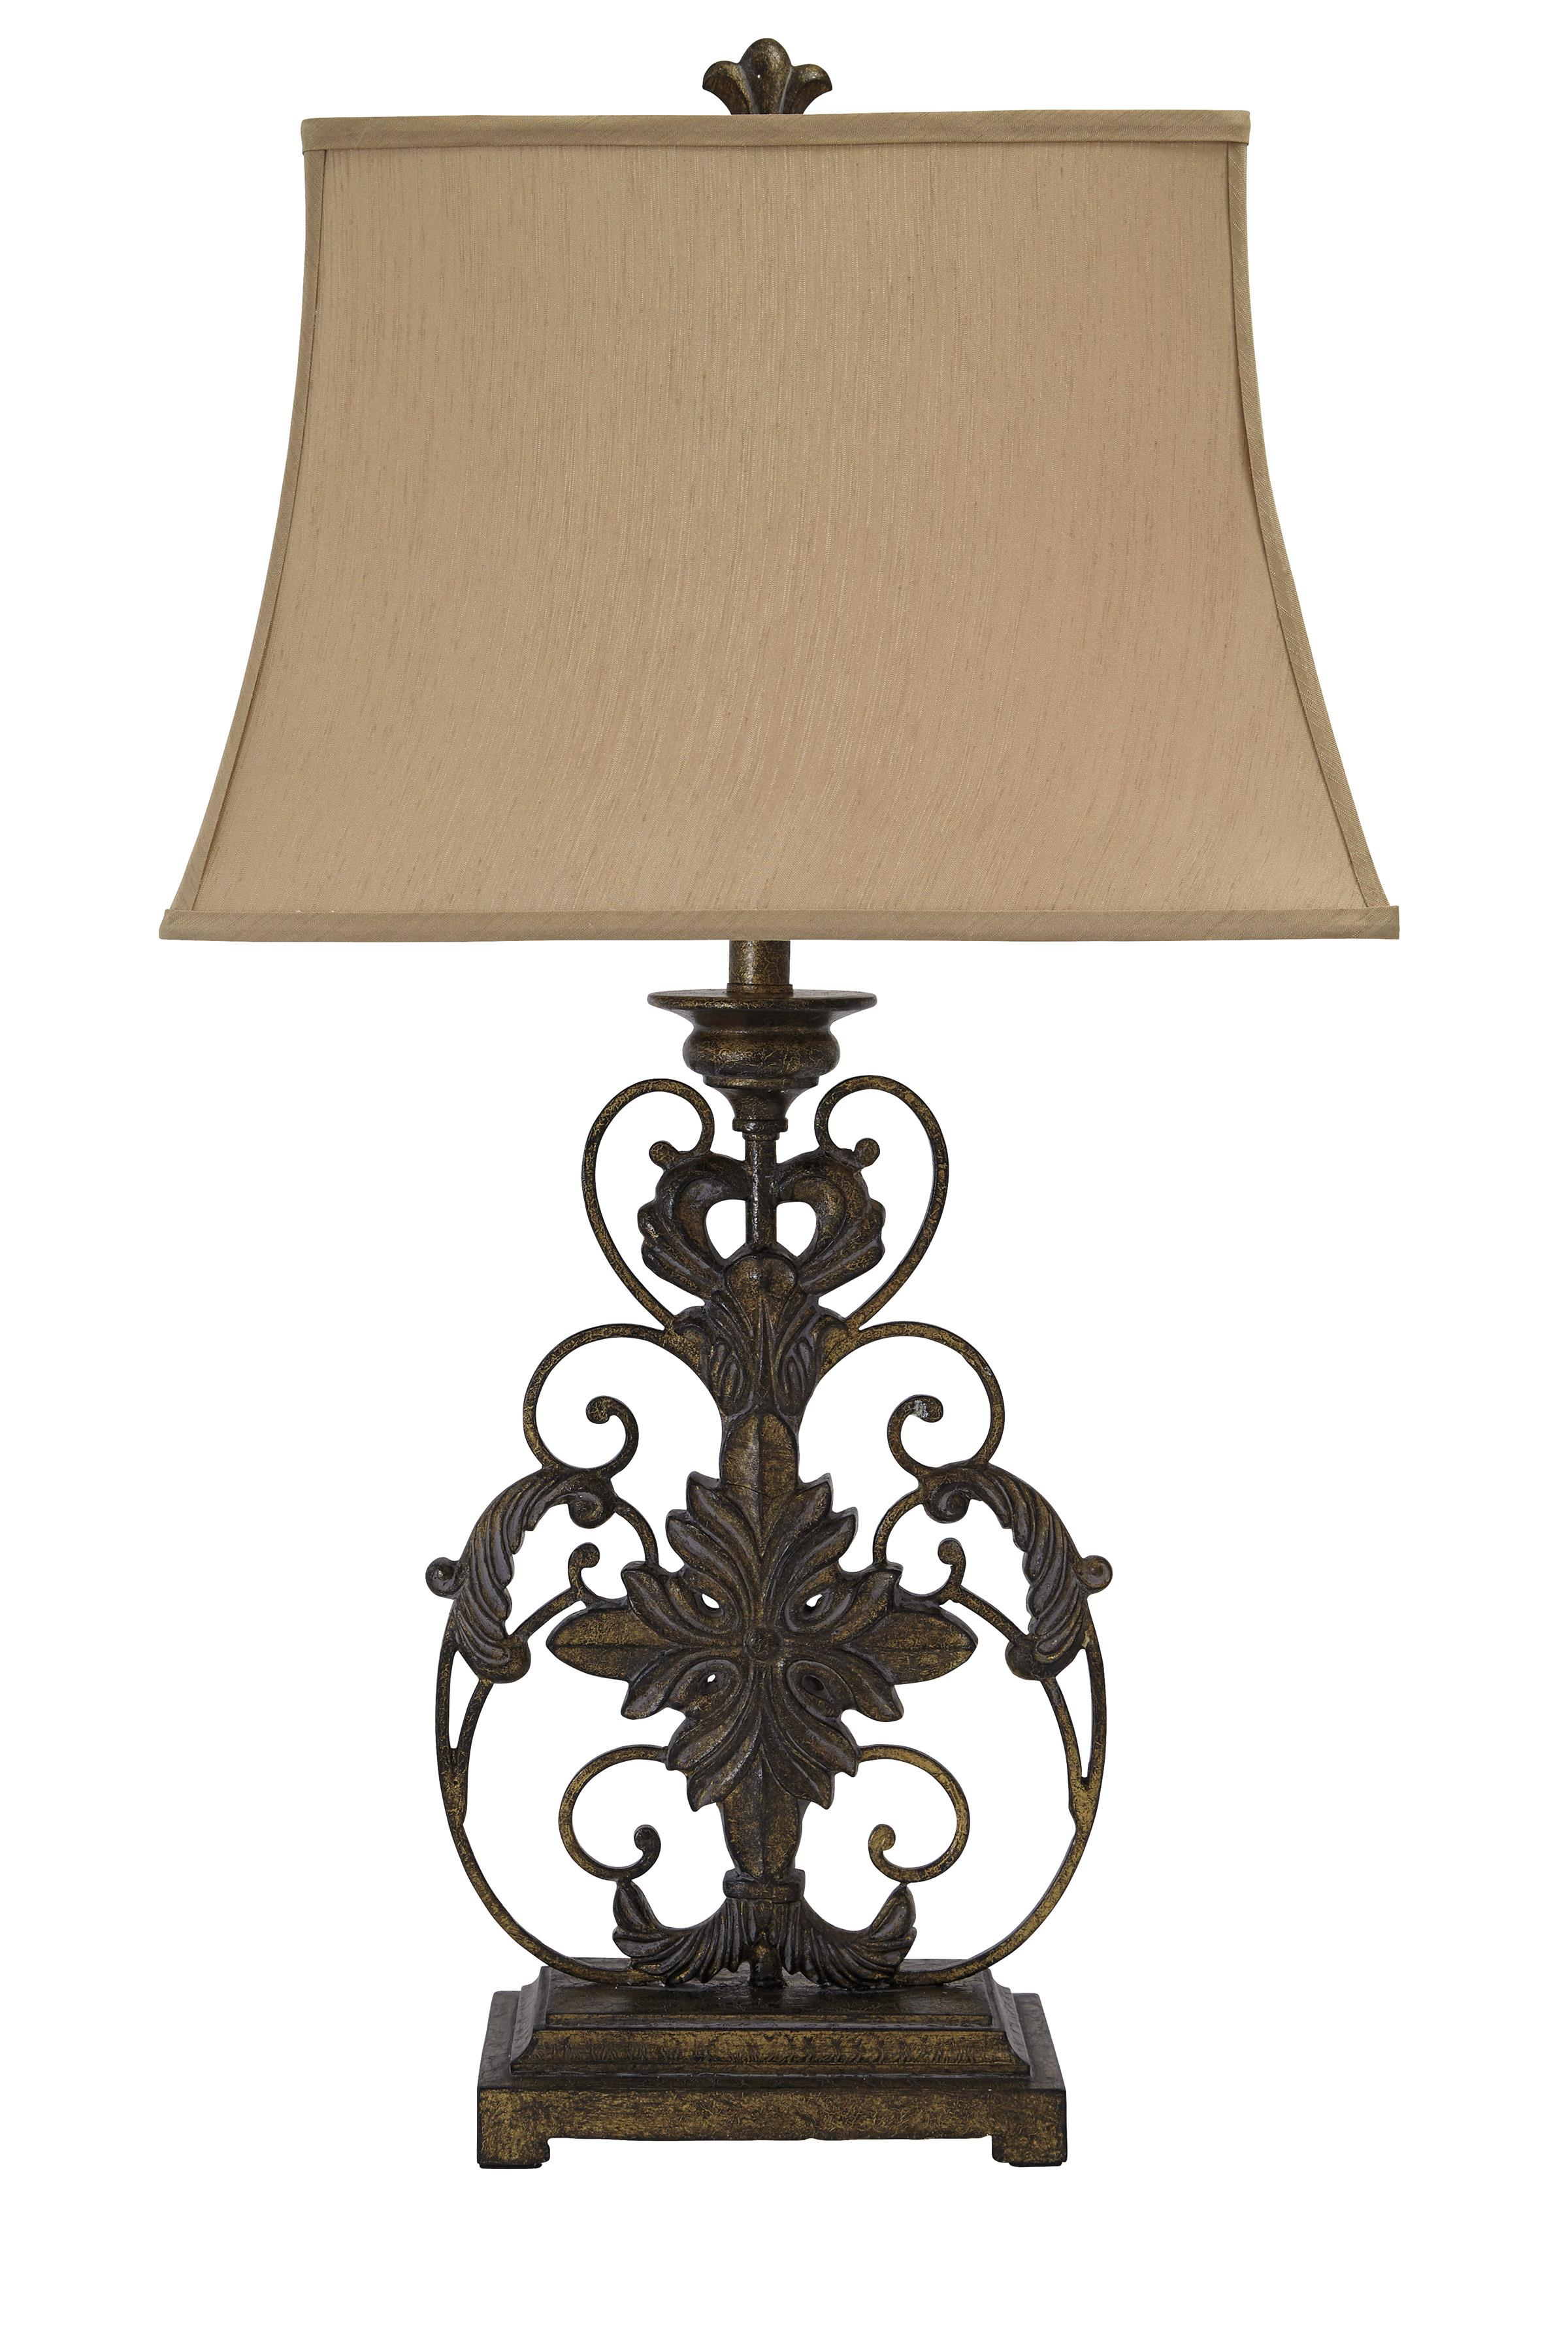 Lamps - Traditional Classics Metal Table Lamp  by Signature at Walker's Furniture